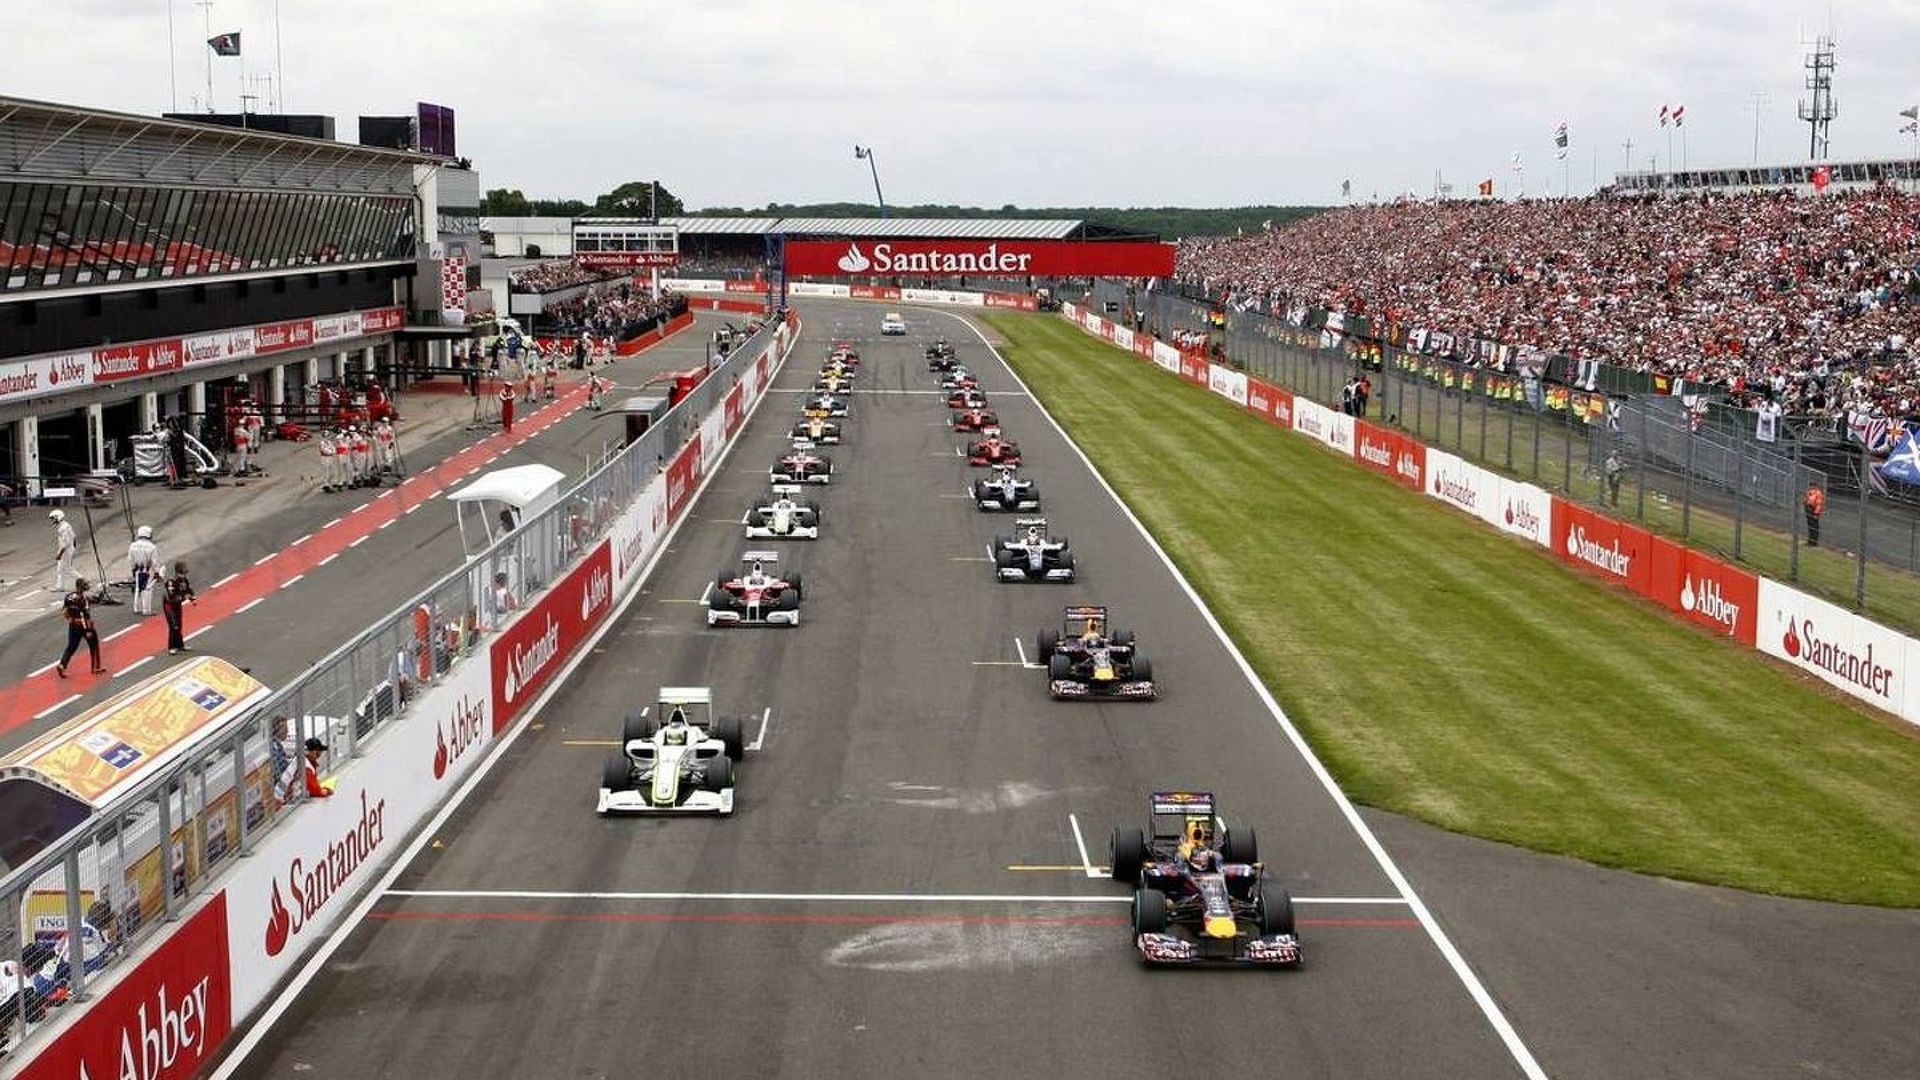 Silverstone doesn't want one-off 2010 GP deal